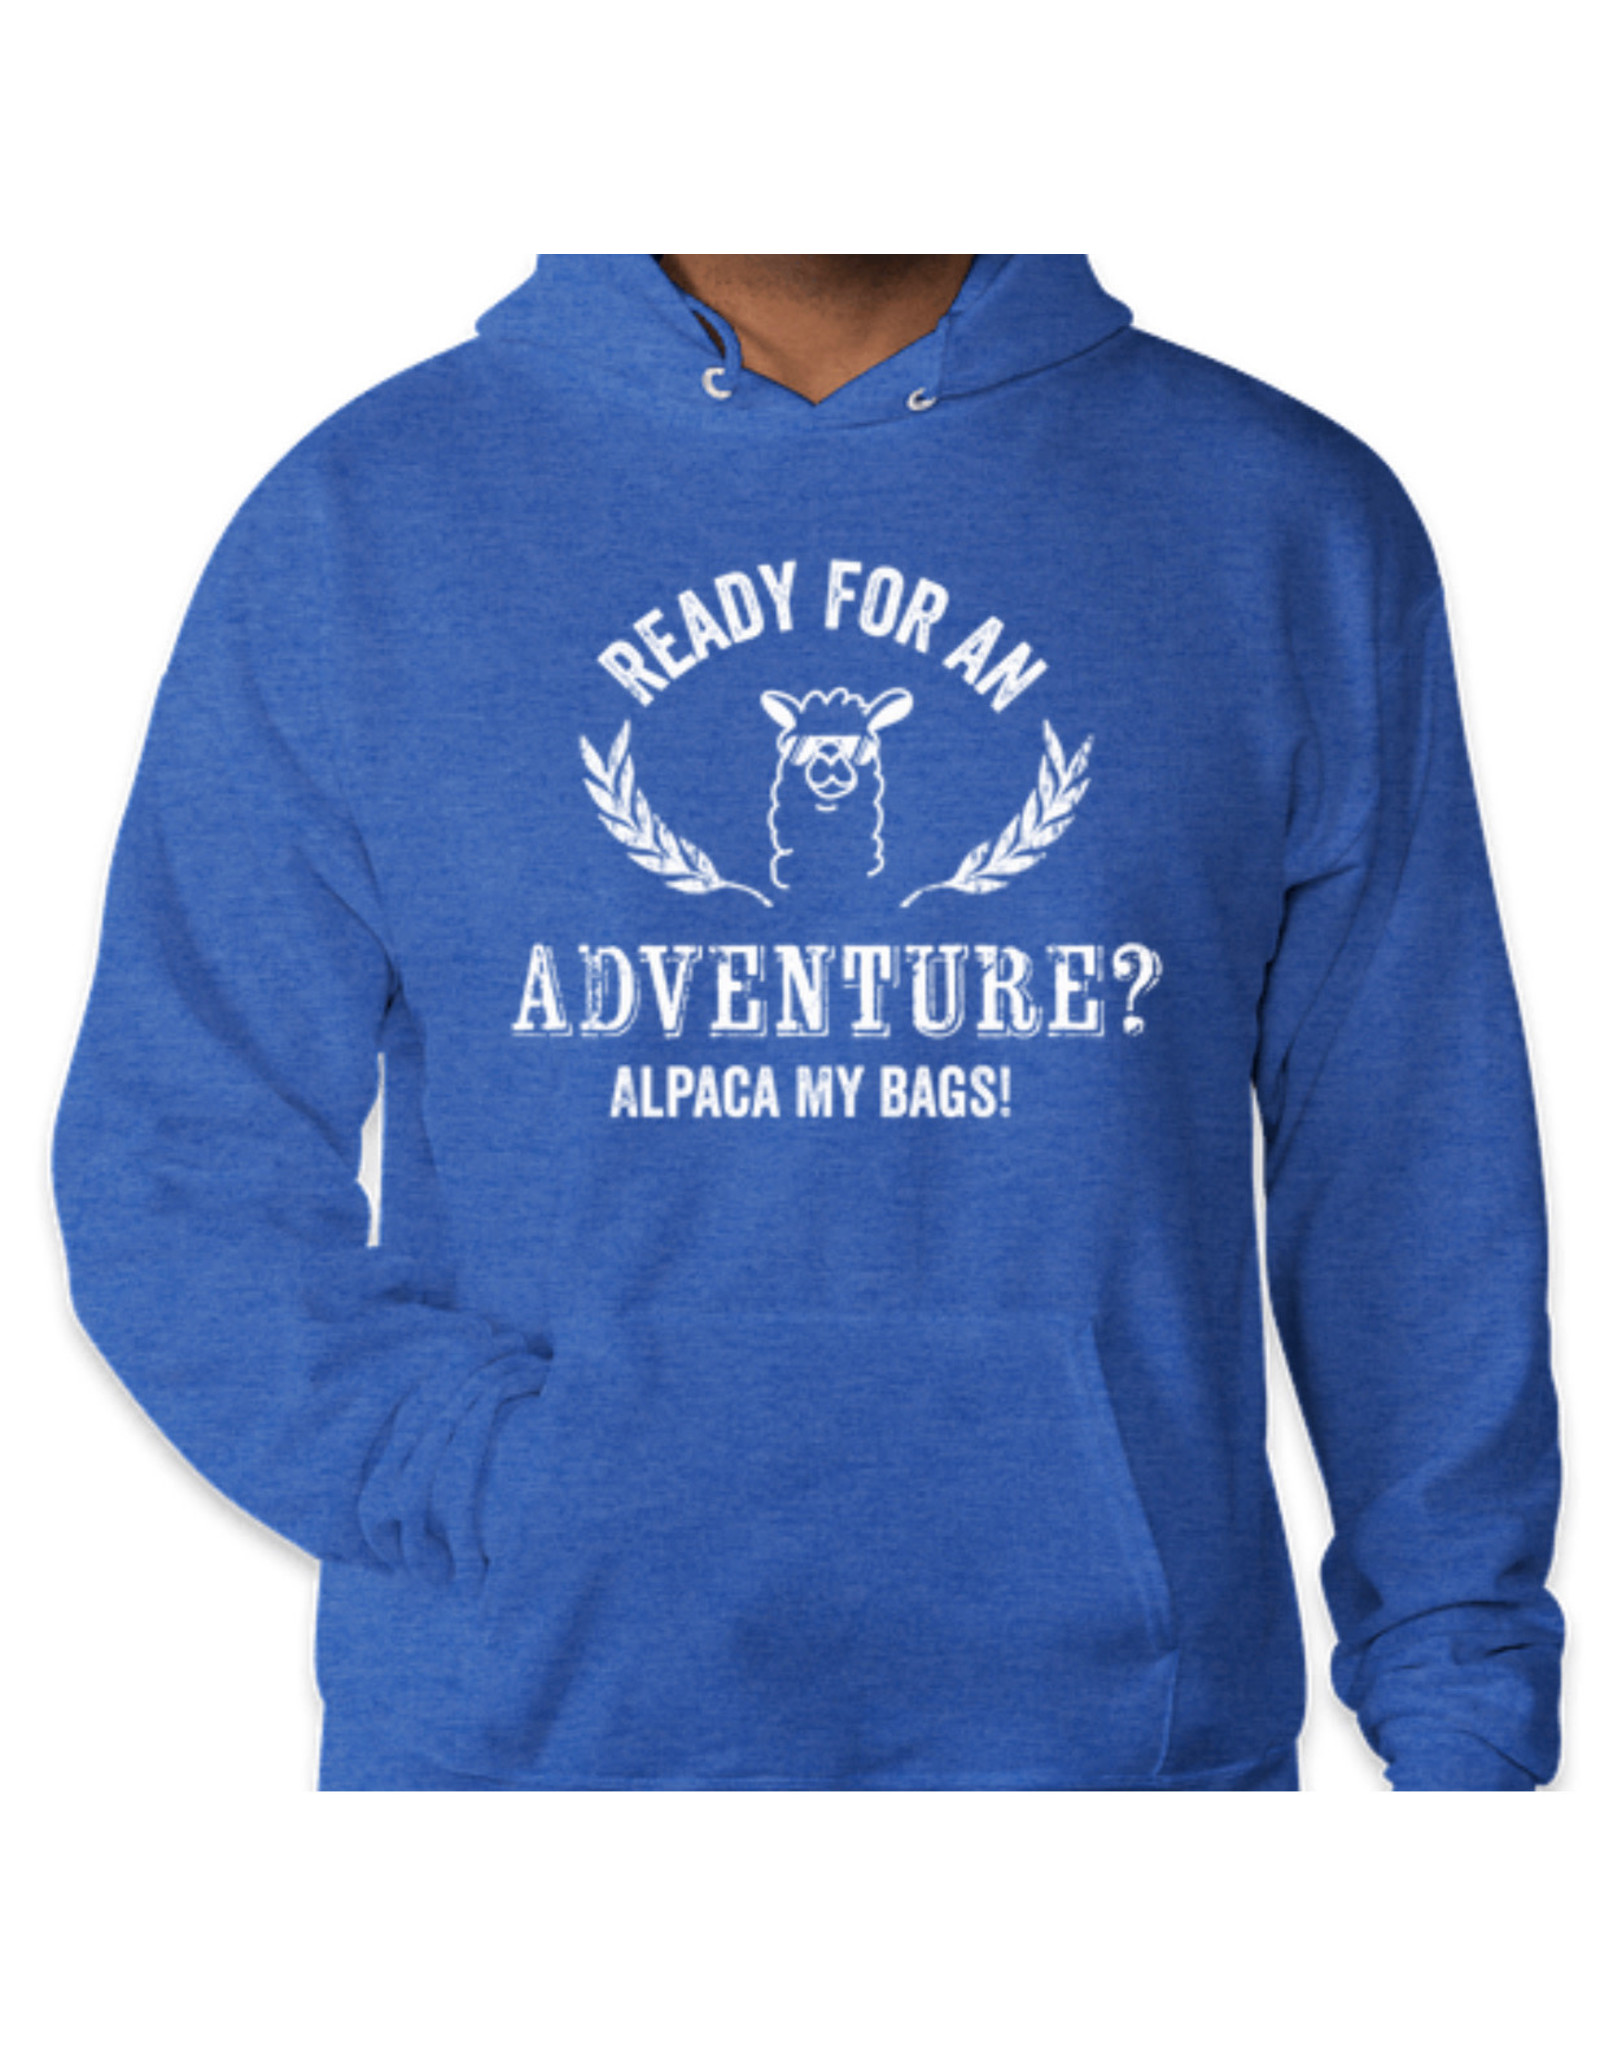 WCF Ready For An Adventure? Alpaca My Bags- Blue Pullover hoody